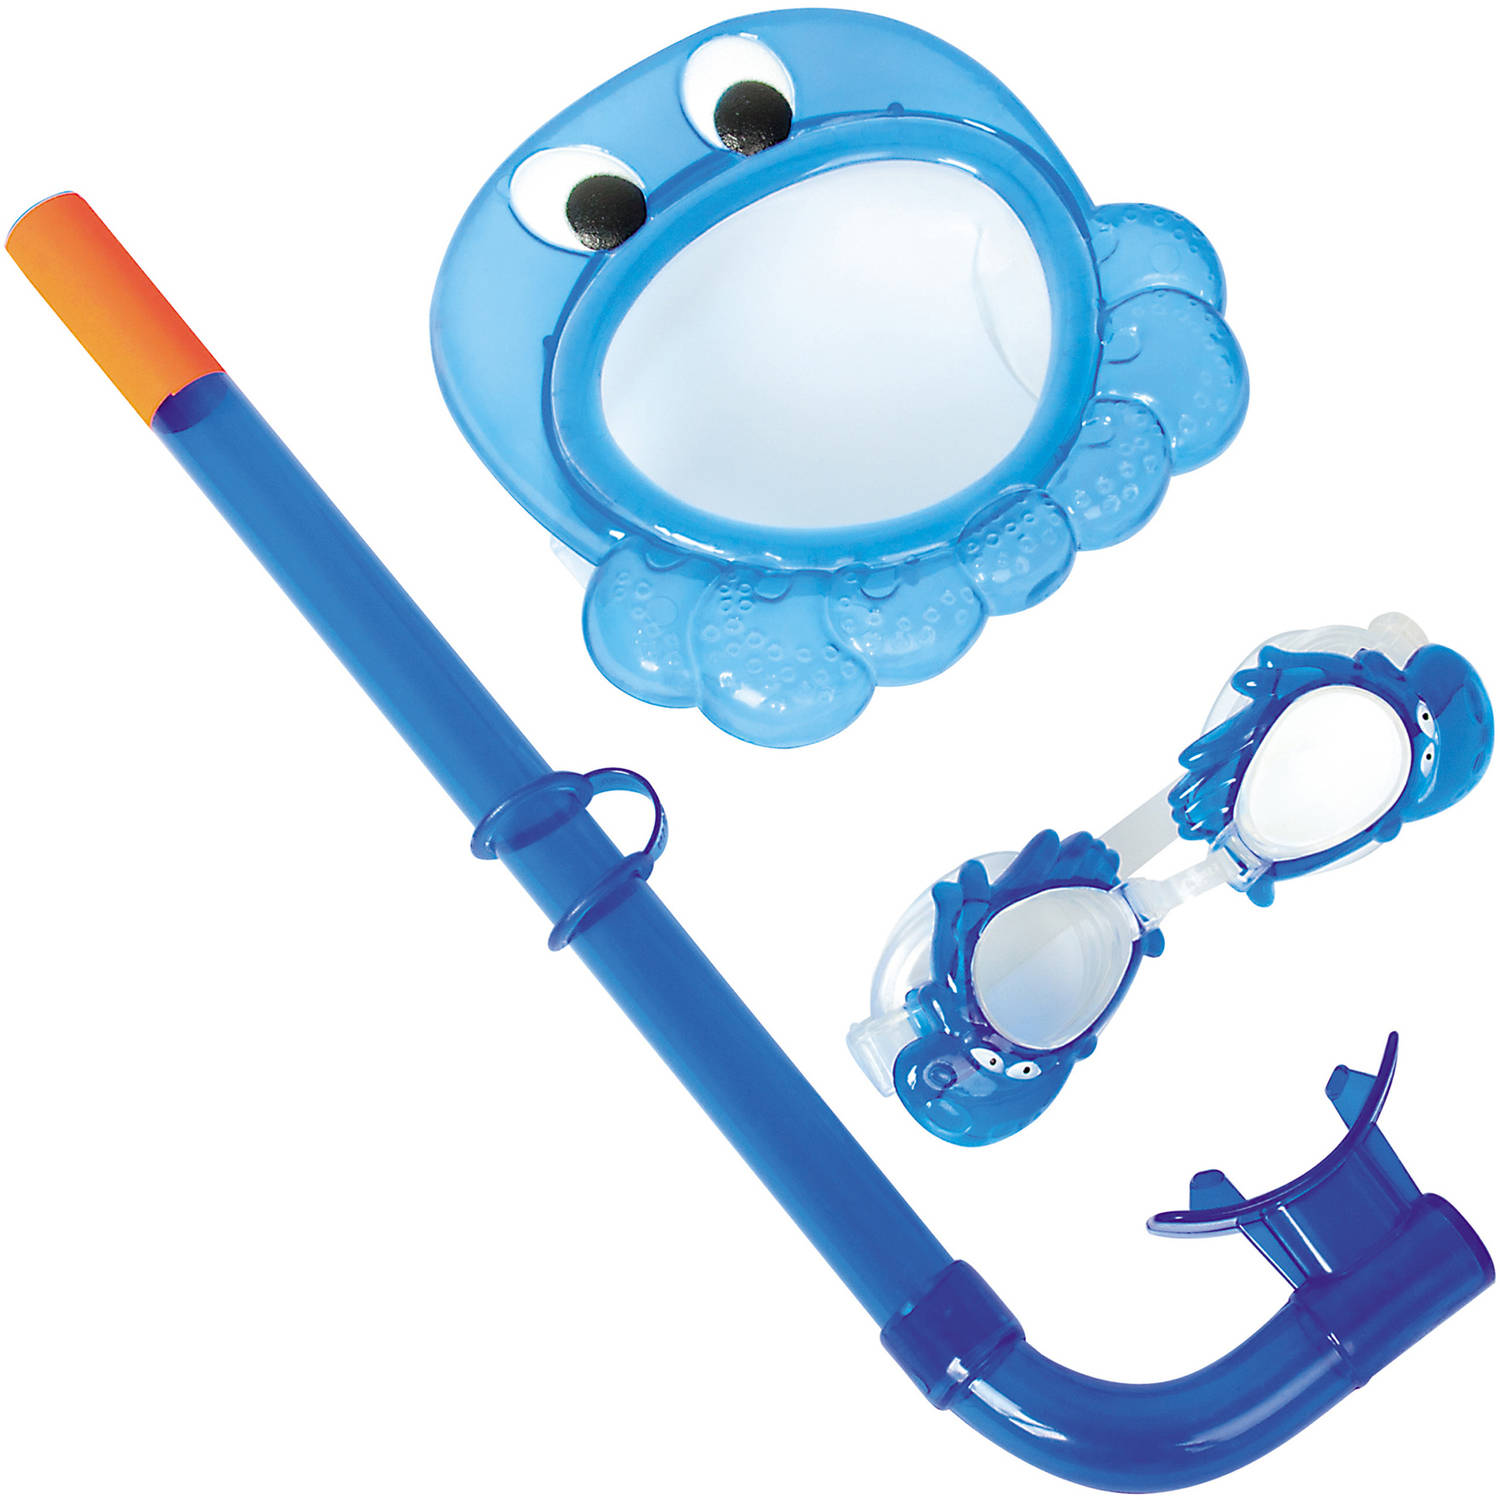 Bestway Character Swim Set, Octopus